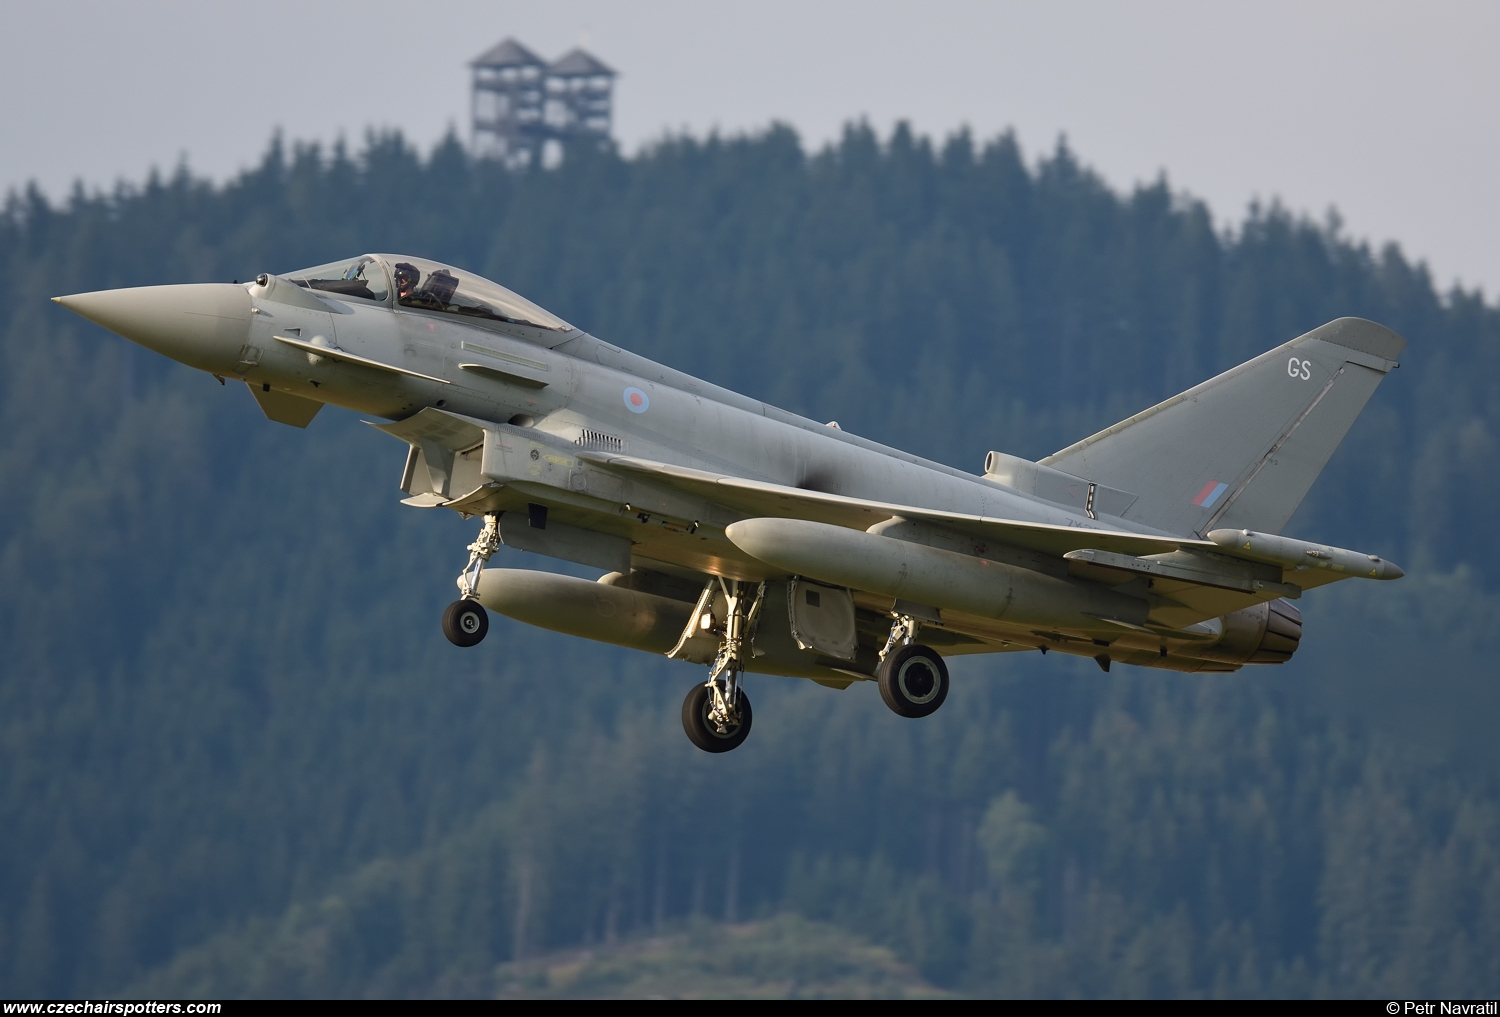 Royal Air Force – Eurofighter EF-2000 Typhoon FGR4 ZK322/GS